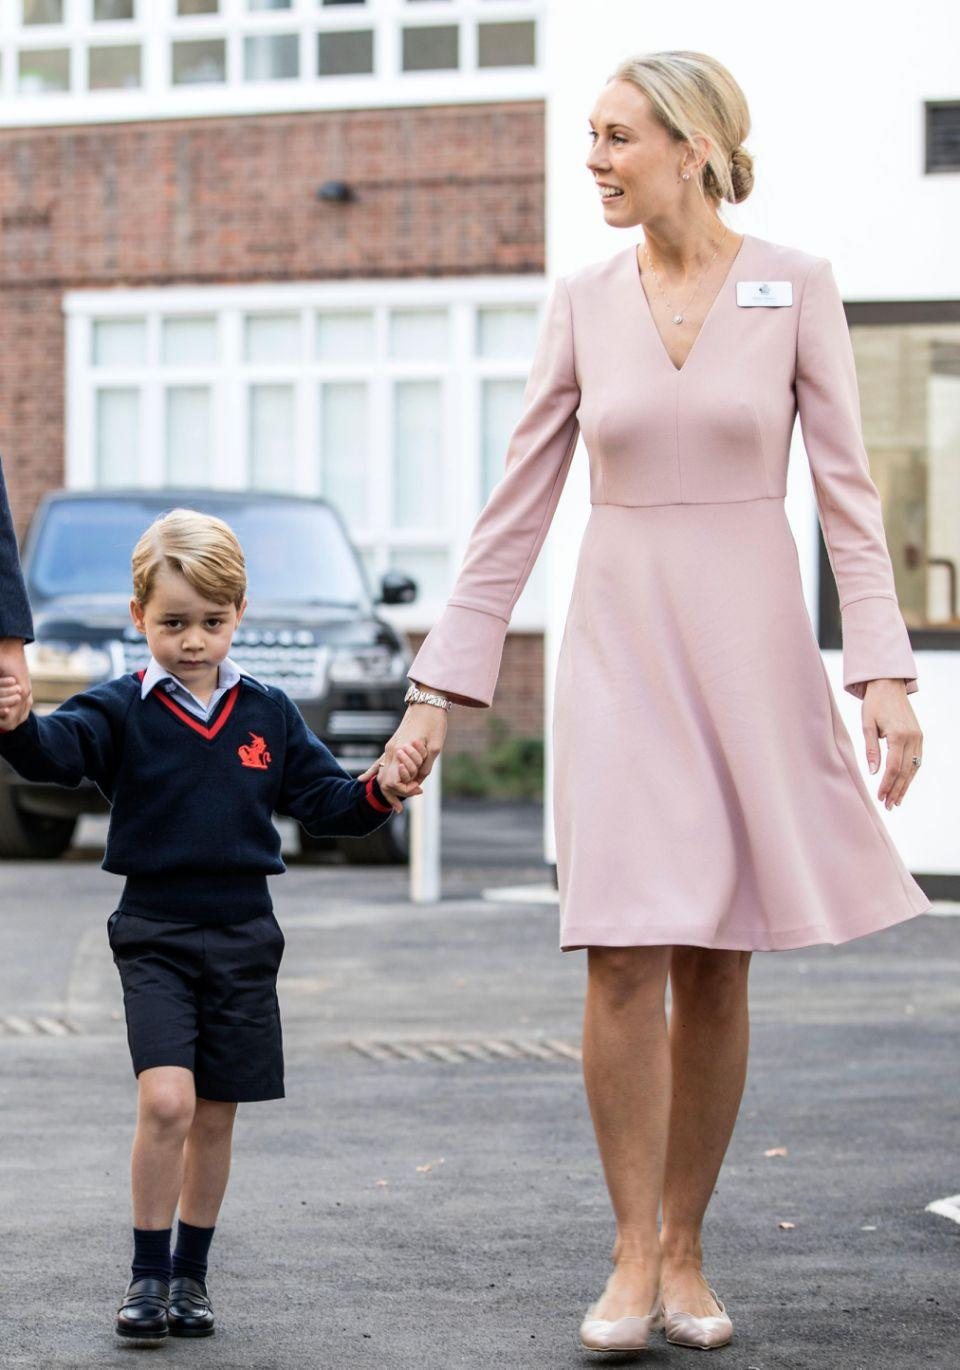 Prince George was greeted by Helen Haslem, the Head of the Lower School at Thomas's Battersea